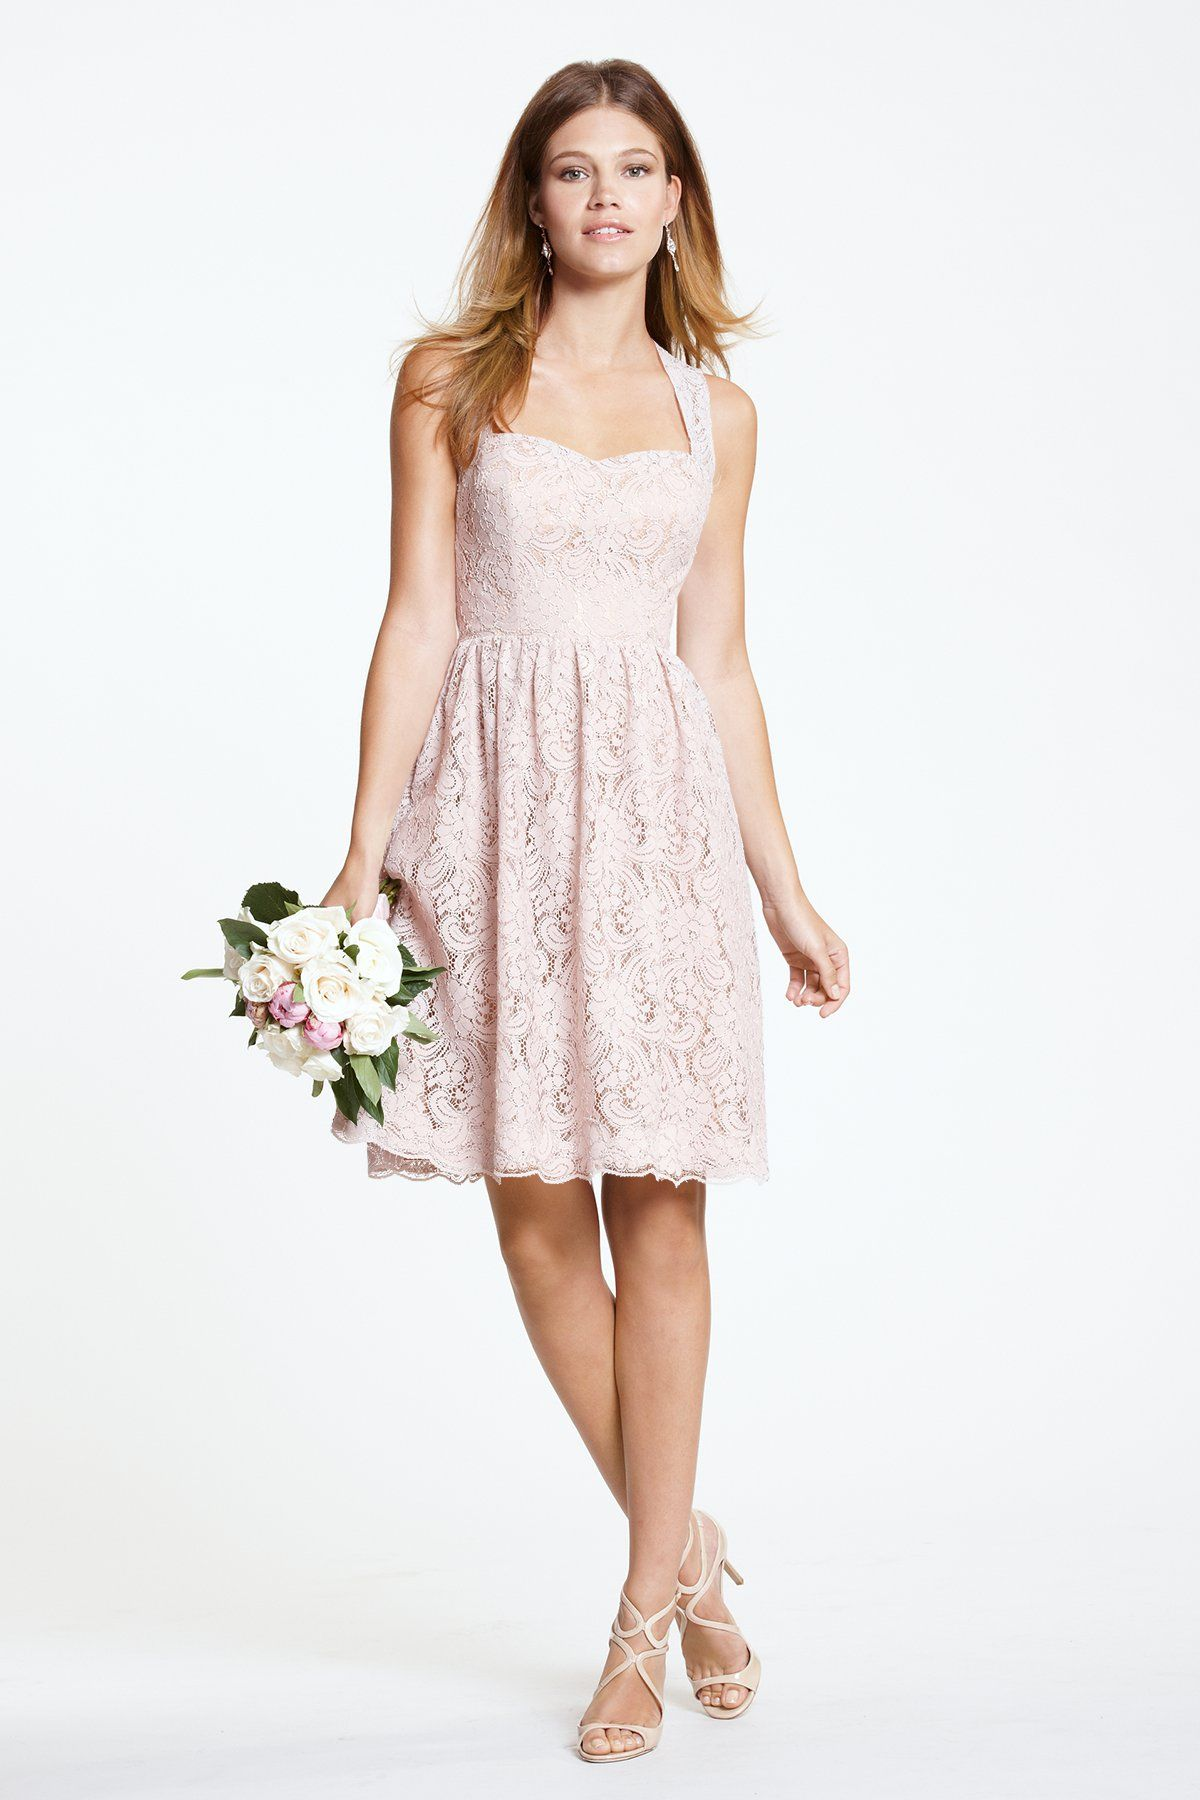 Watters Dress Sisley Style 5228 w/ CORAL LACE & IVORY LINING ...